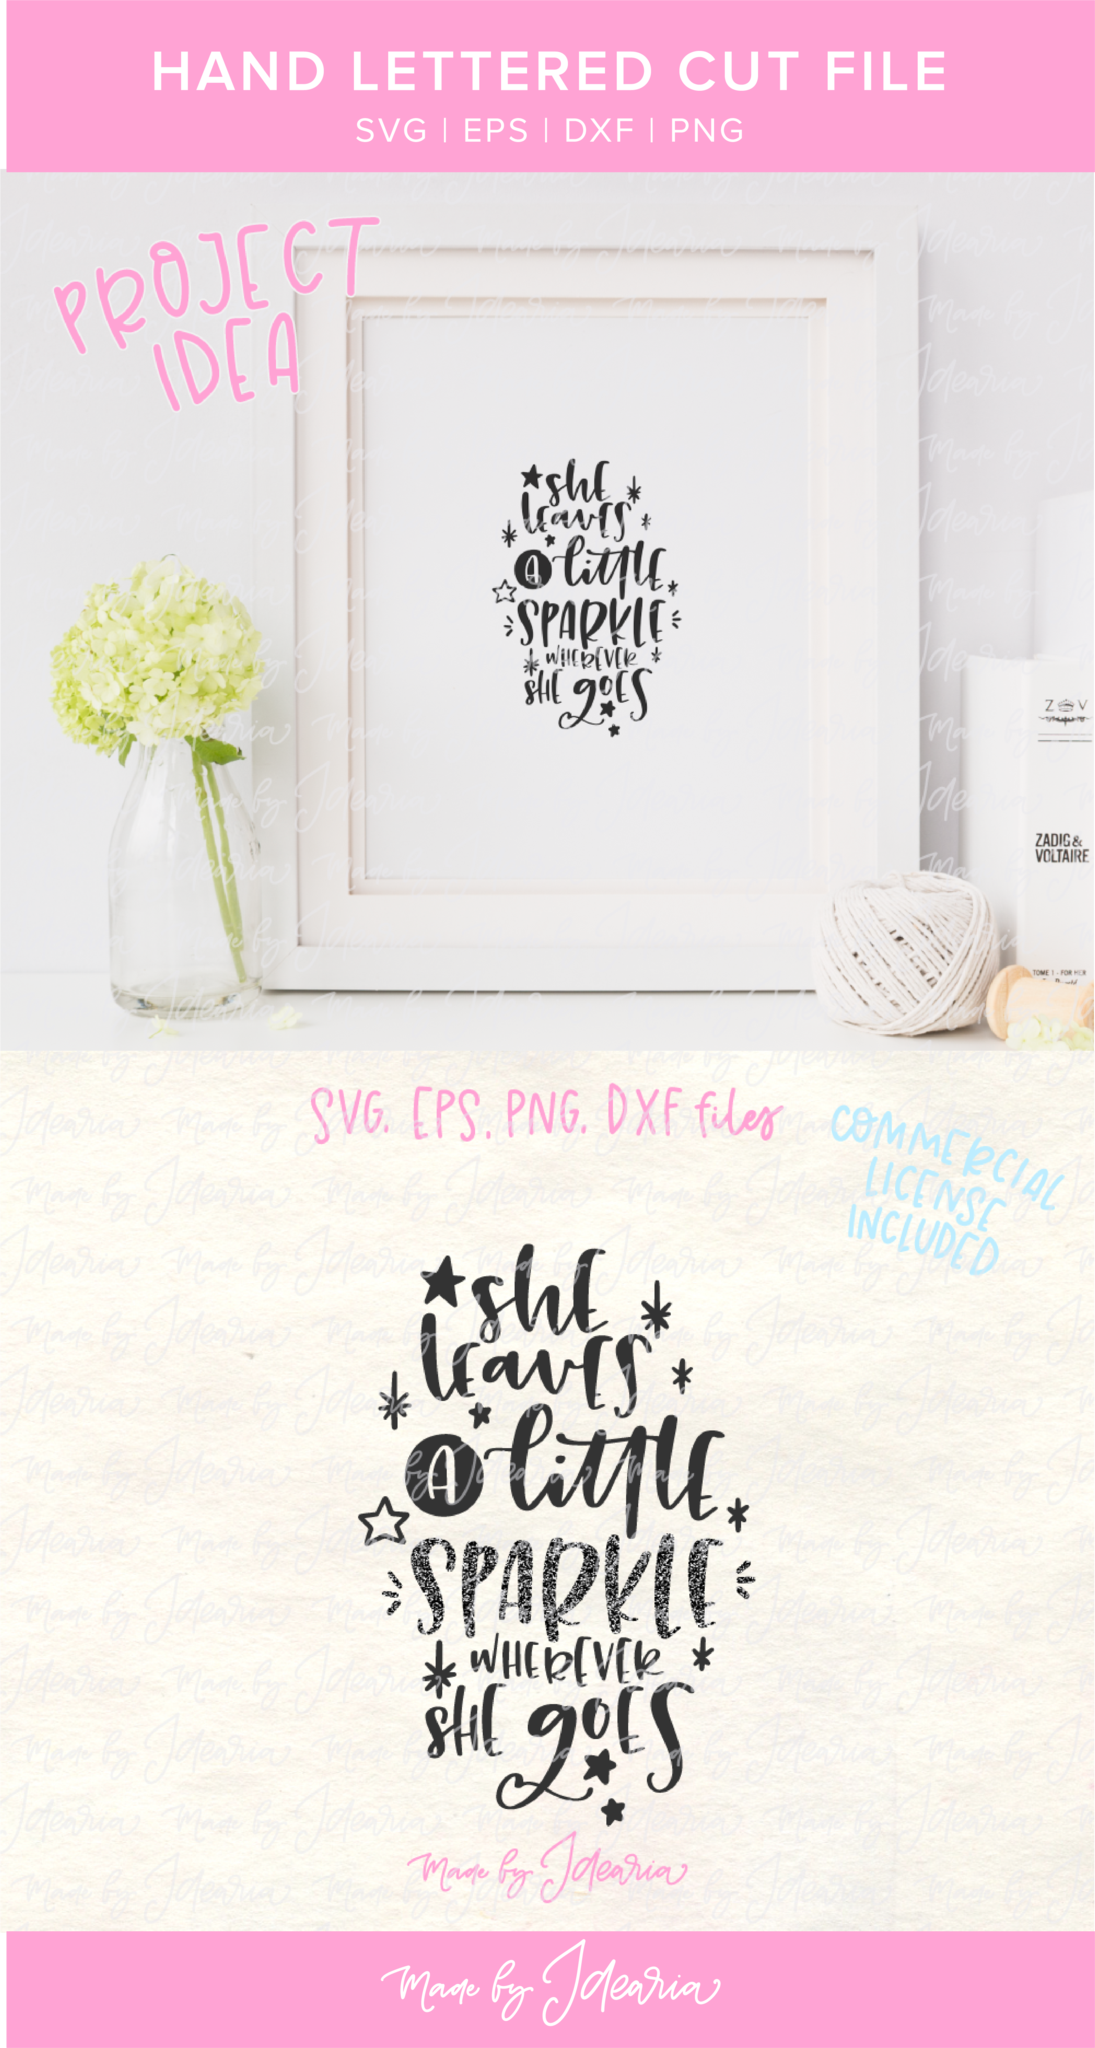 This Baby Girl Svg Featuring Quote She Leaves A Little Sparkle Wherever She Goes Would Make A Cute Nurser Cute Baby Shower Gifts Baby Girl Svg Crafts For Girls